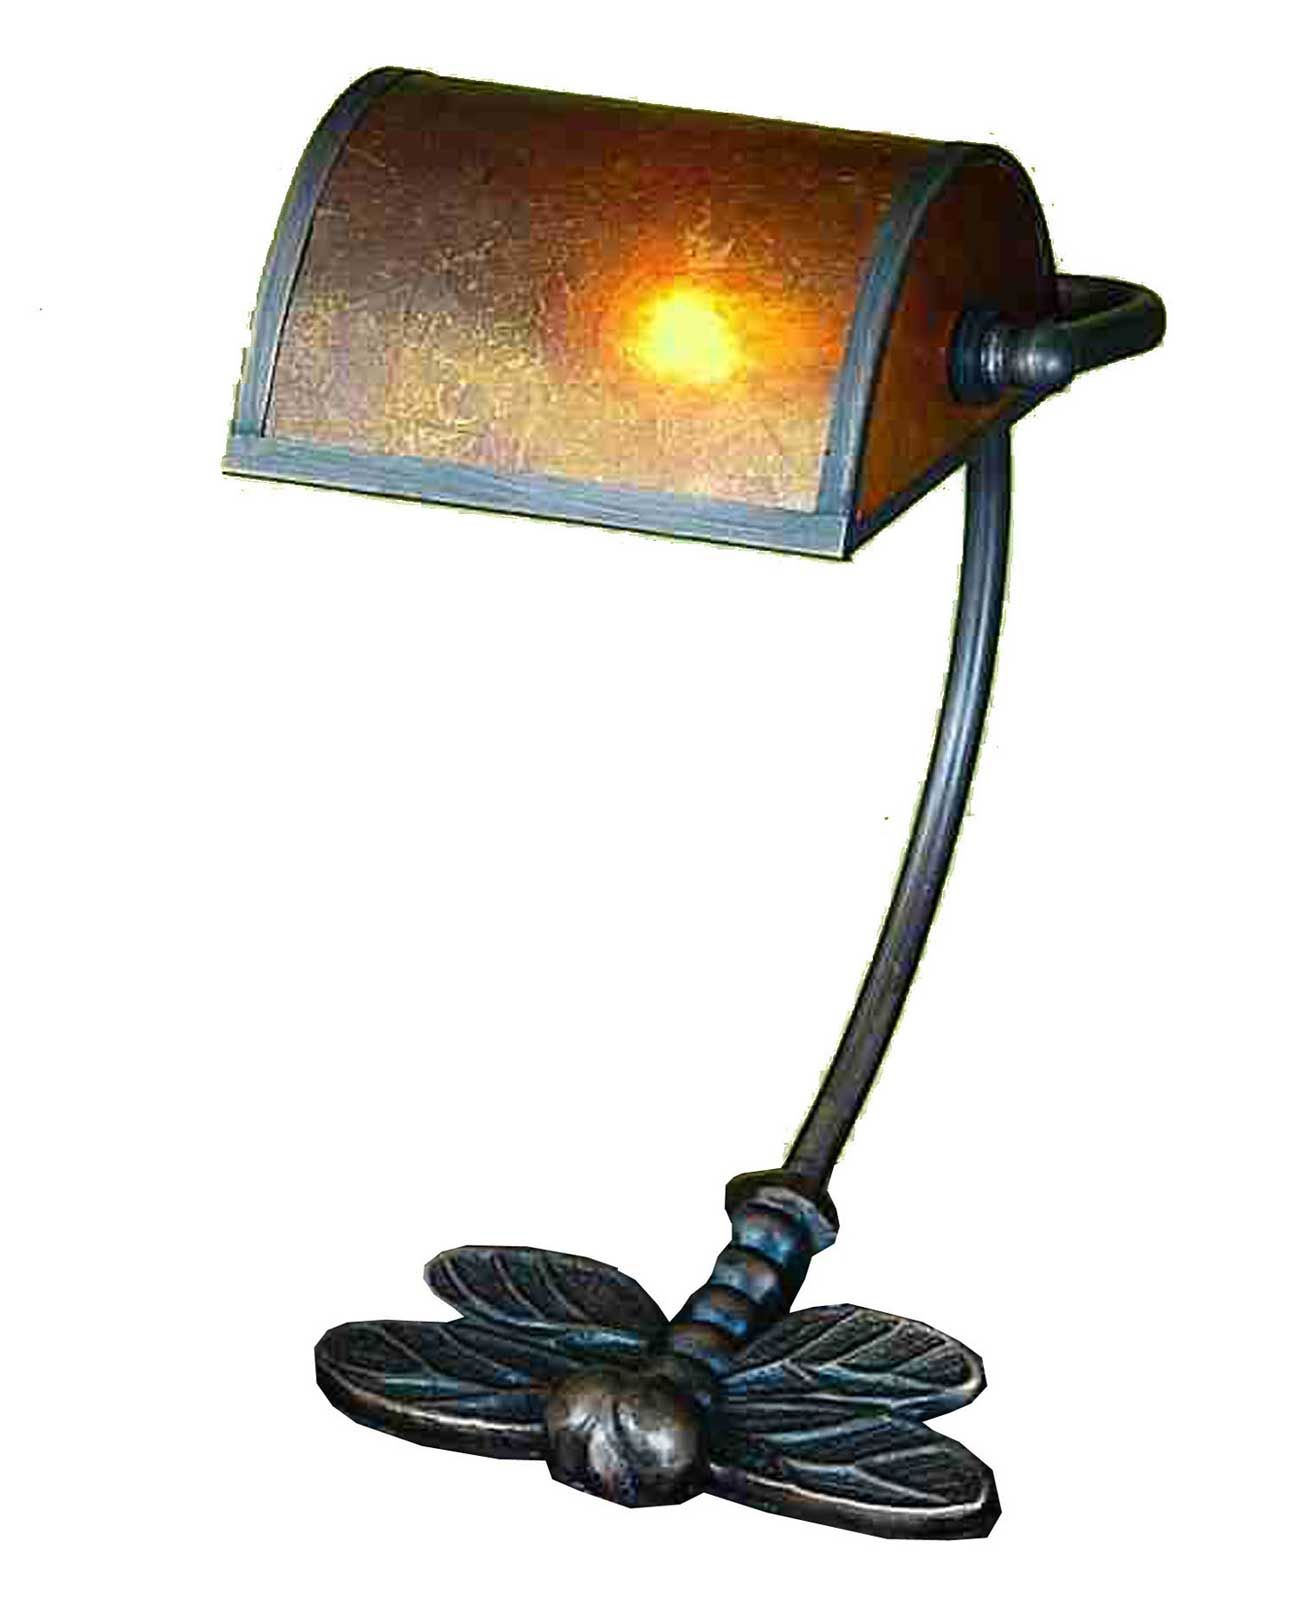 Meyda Tiffany Traditional Bankers Table Lamp Lamp Table Lamp Tiffany Table Lamps